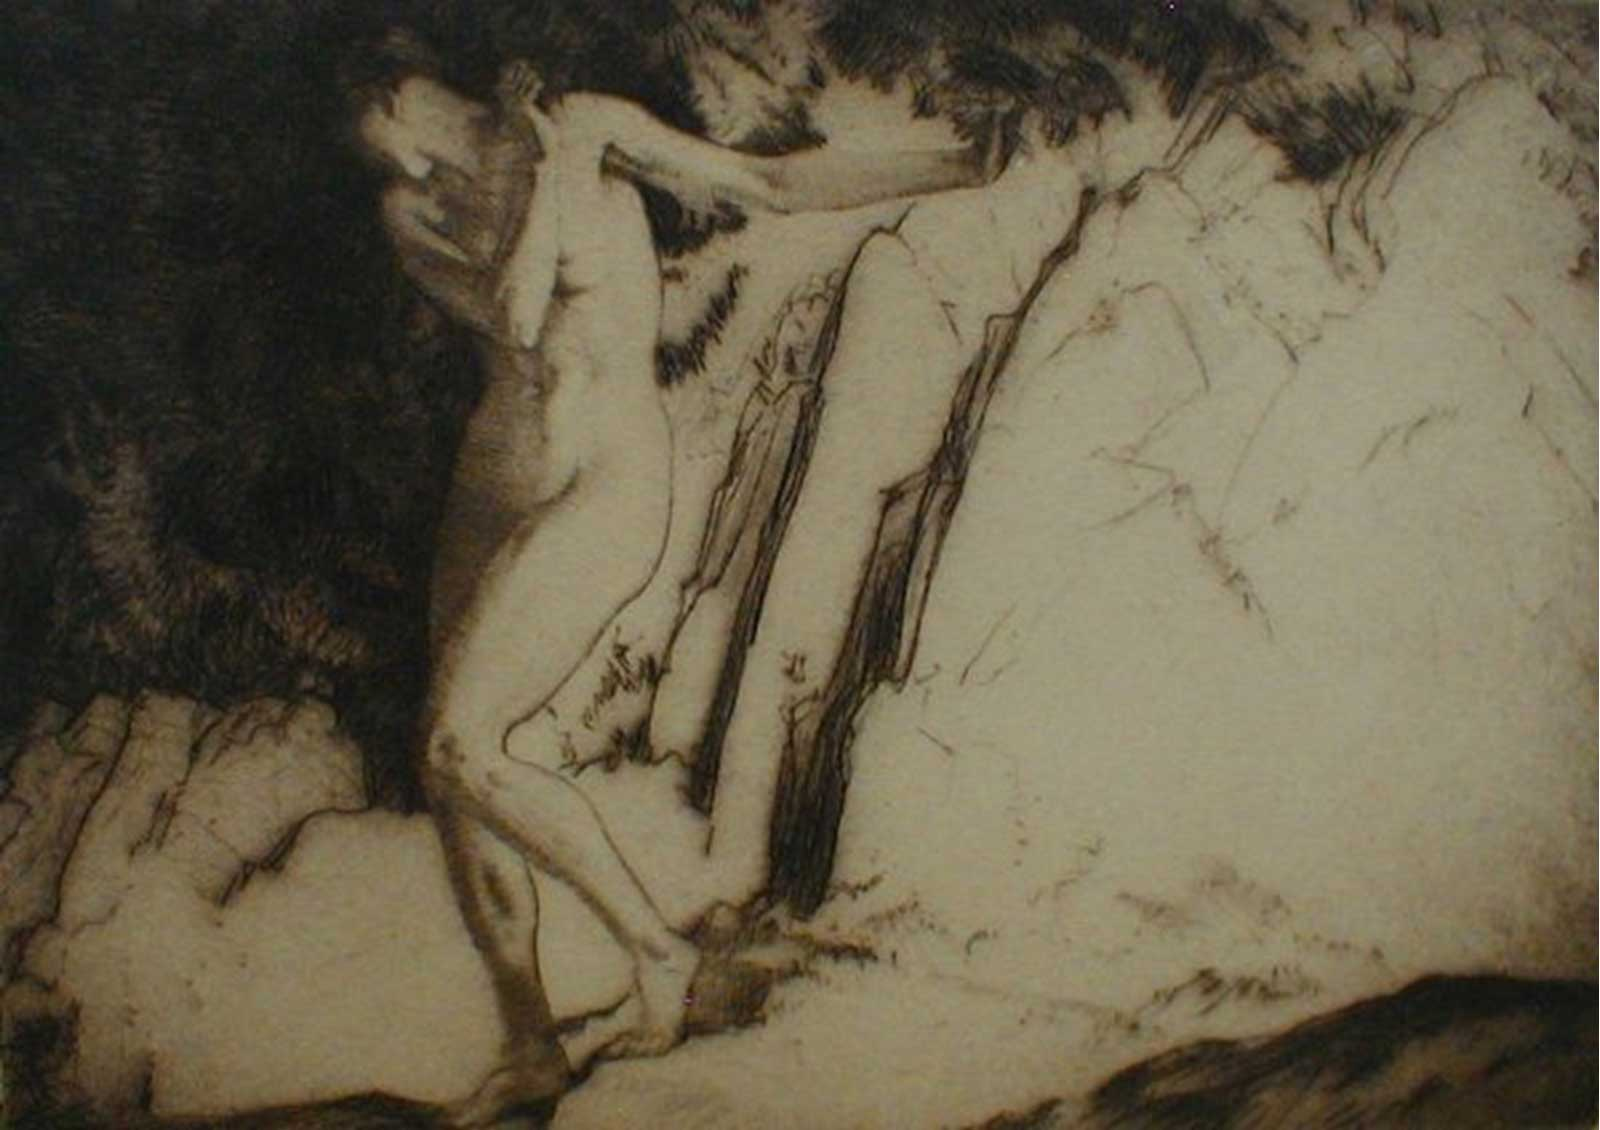 Talusman Fine Art William Russell Flint - 'Eve' - Drypoint Etching